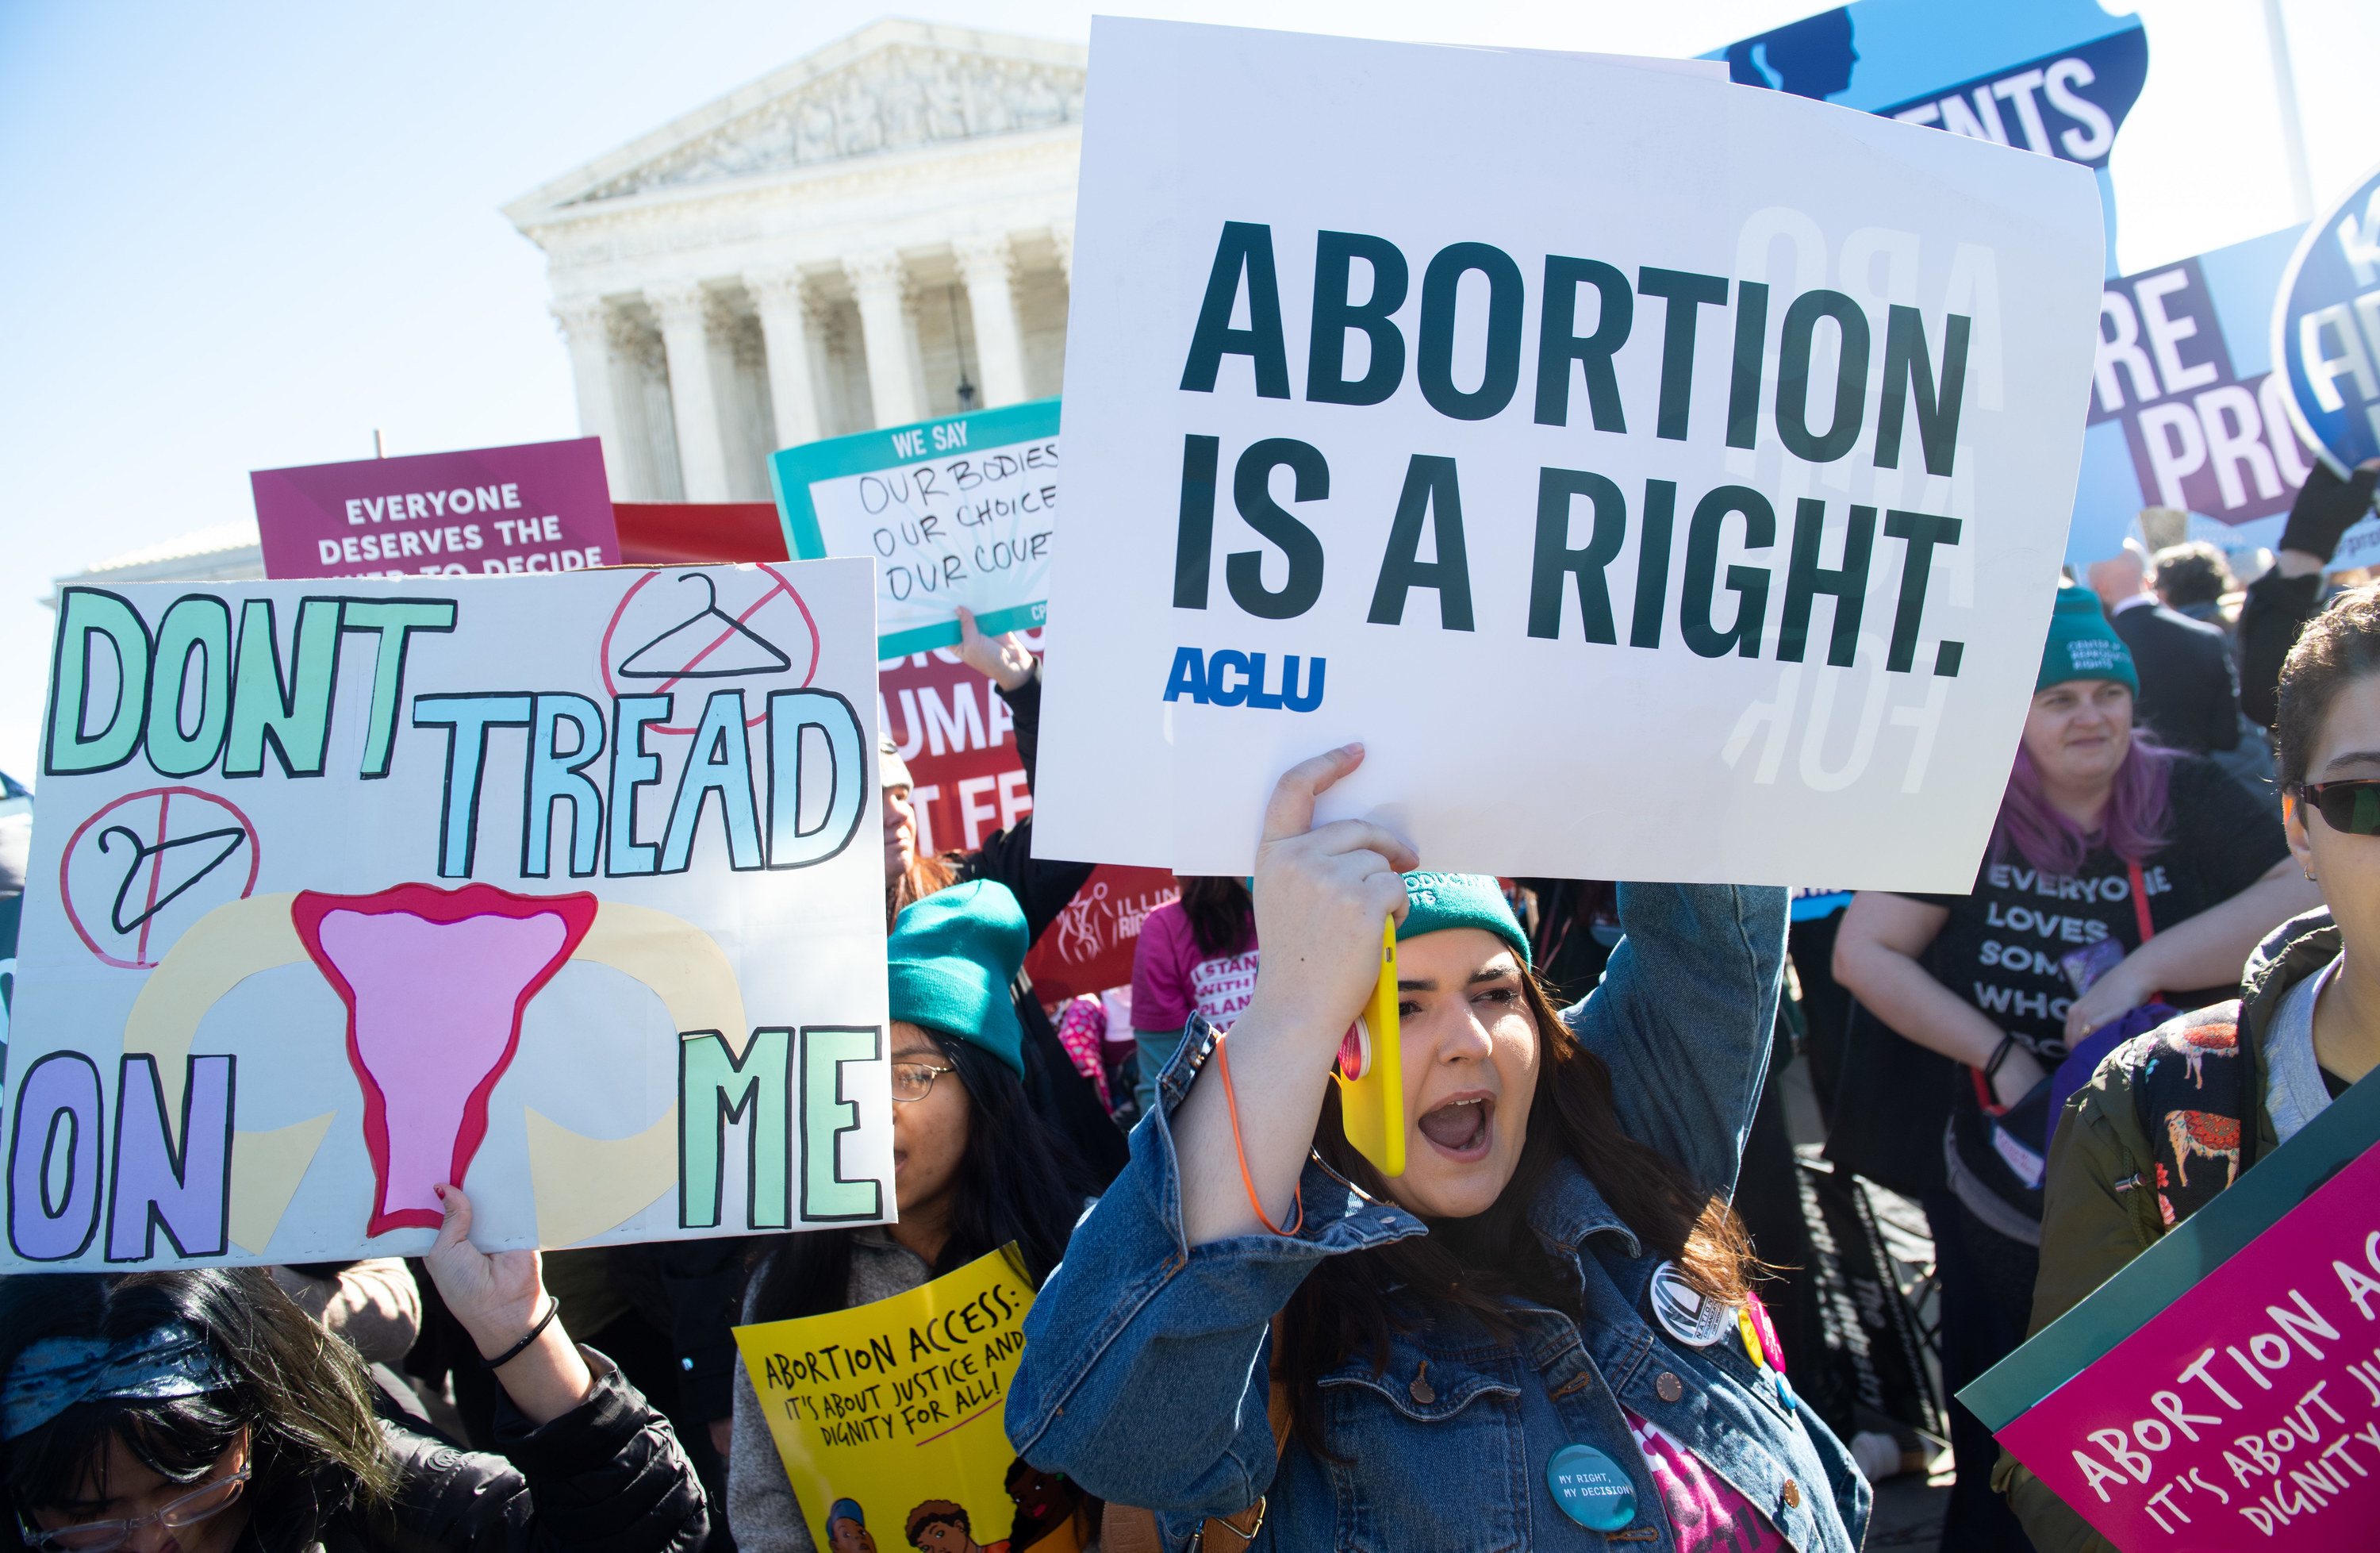 Pro-choice activists supporting legal access to abortion protest during a demonstration outside the US Supreme Court in Washington, DC, March 4, 2020